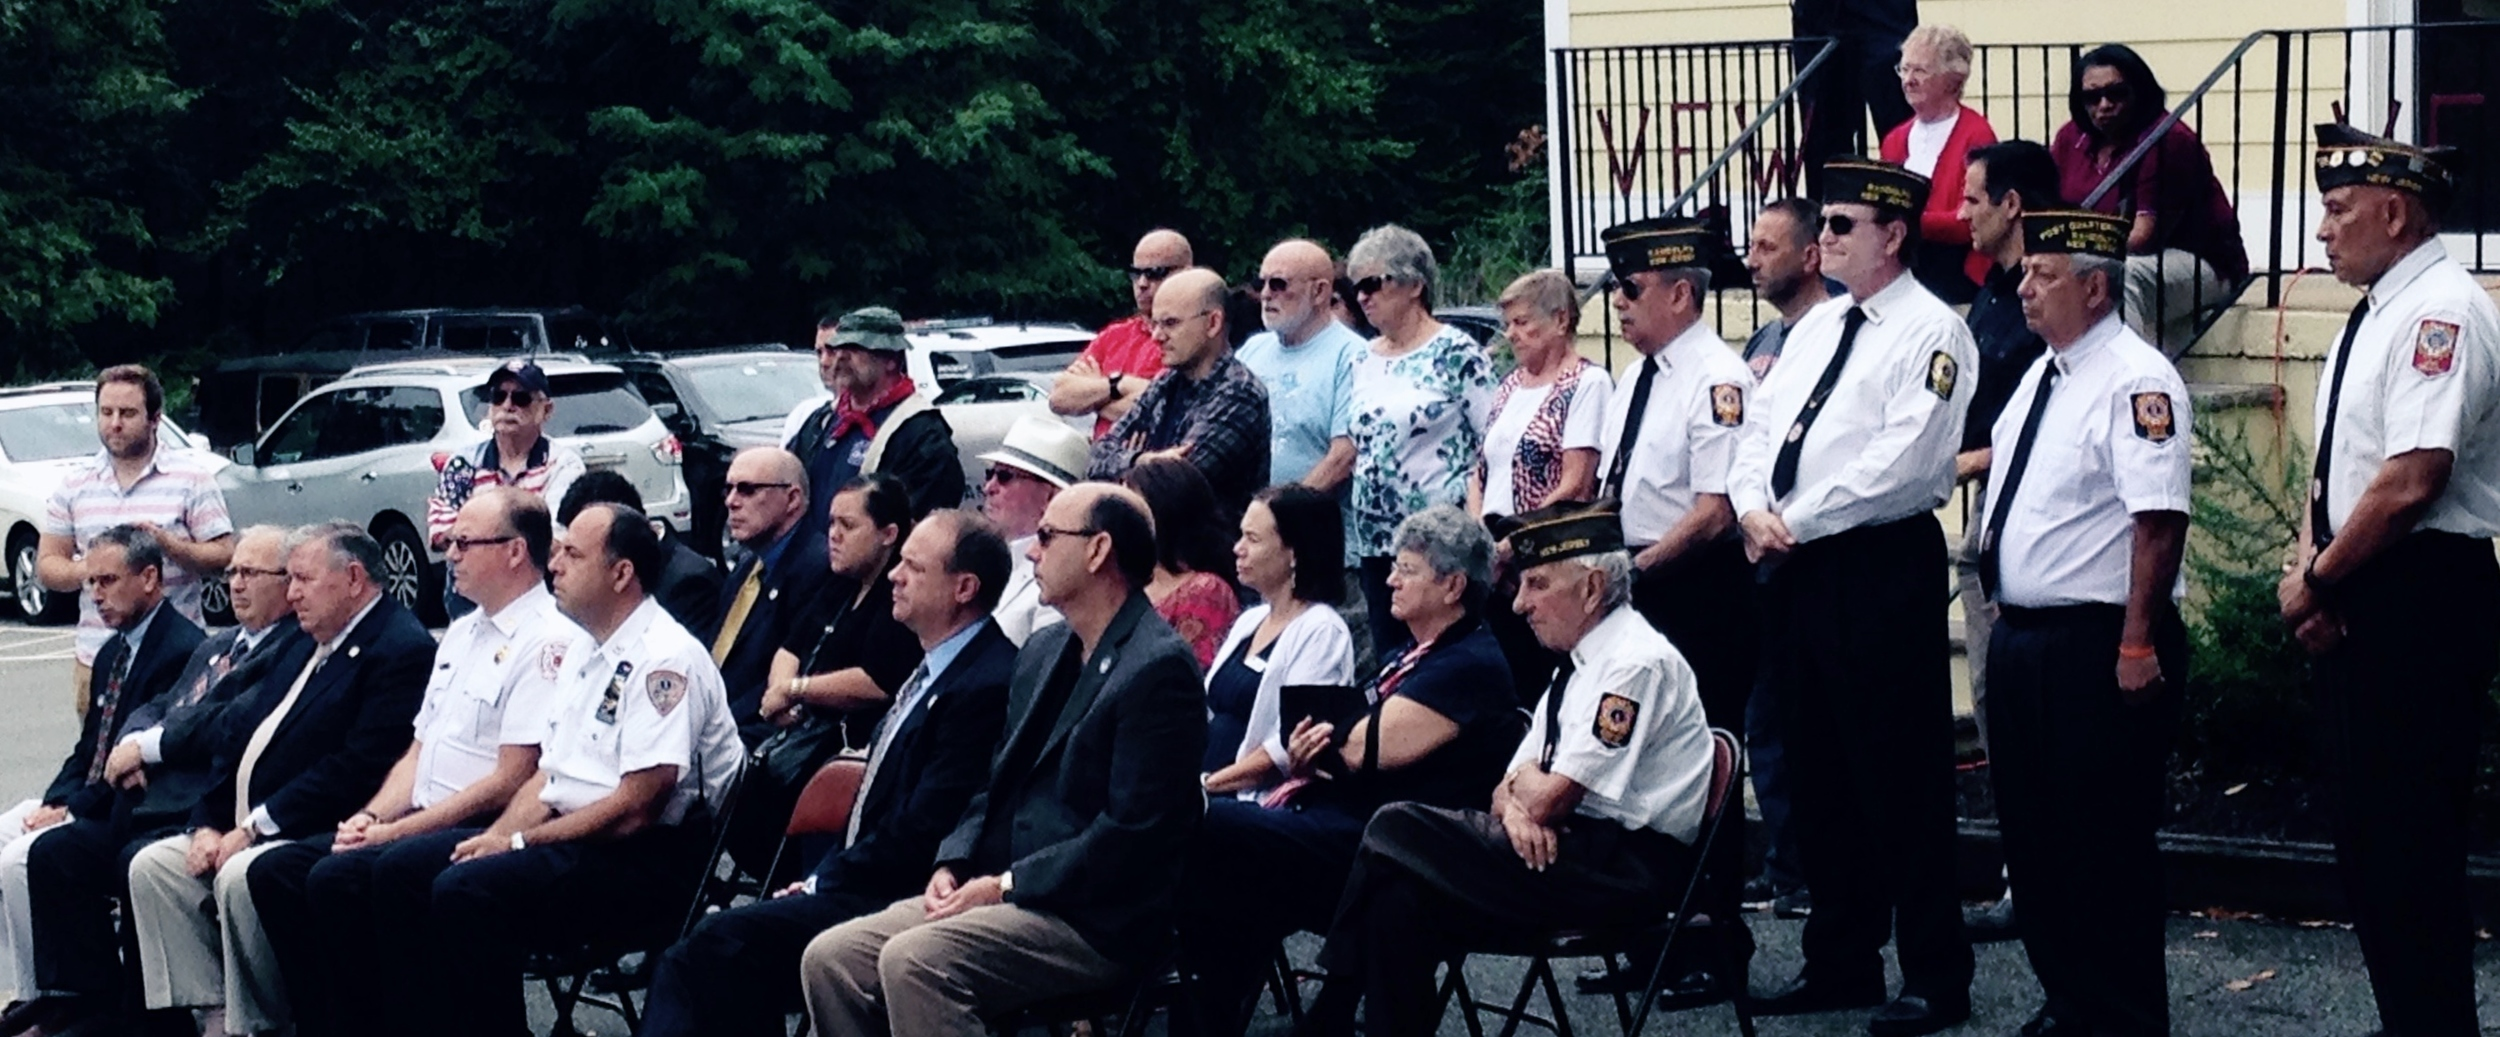 Patriots Day 2015 - Guests included Randolph Township Council Members Loveys and Napoliello and State Senator Anthony Bucco   VFW members shown are Mario( seated ) and Angel, Bill , Rich and Emerson.